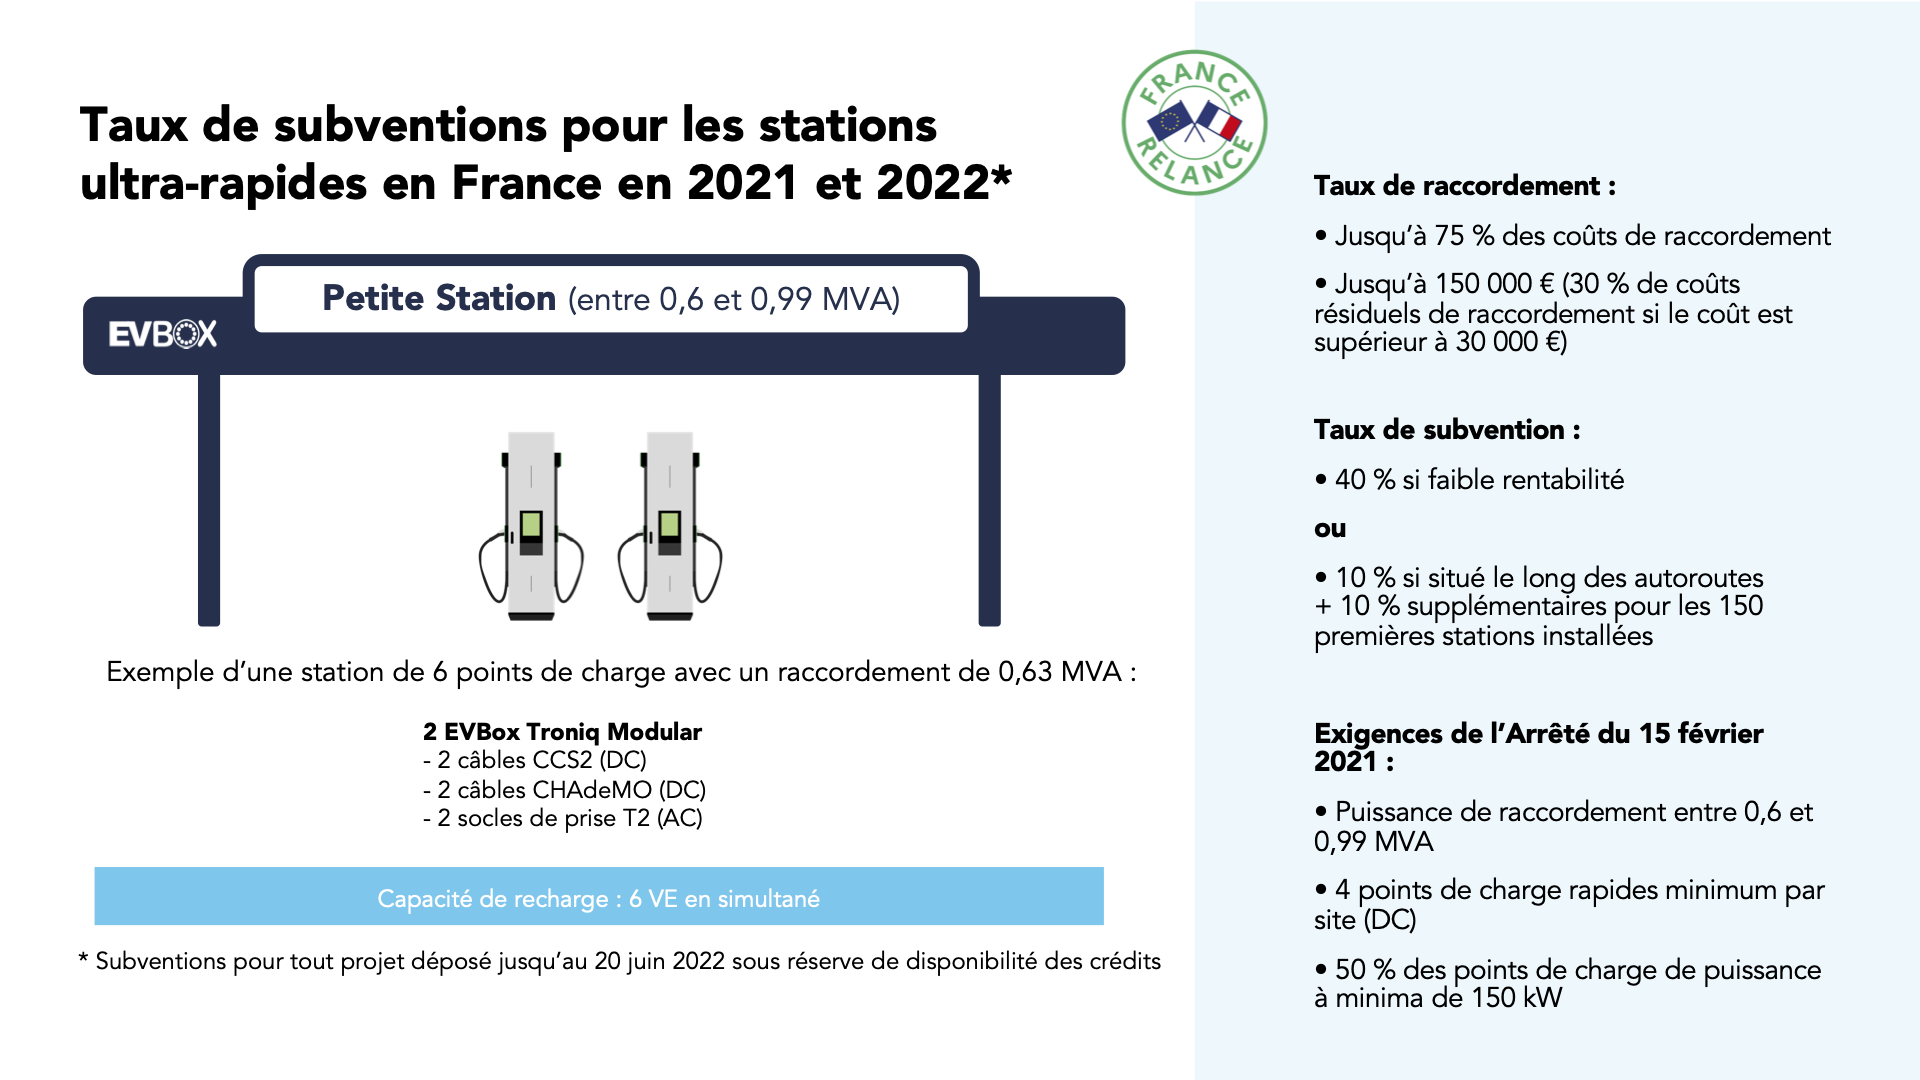 FR-blog-subventions-France-Relance-petite-station-recharge